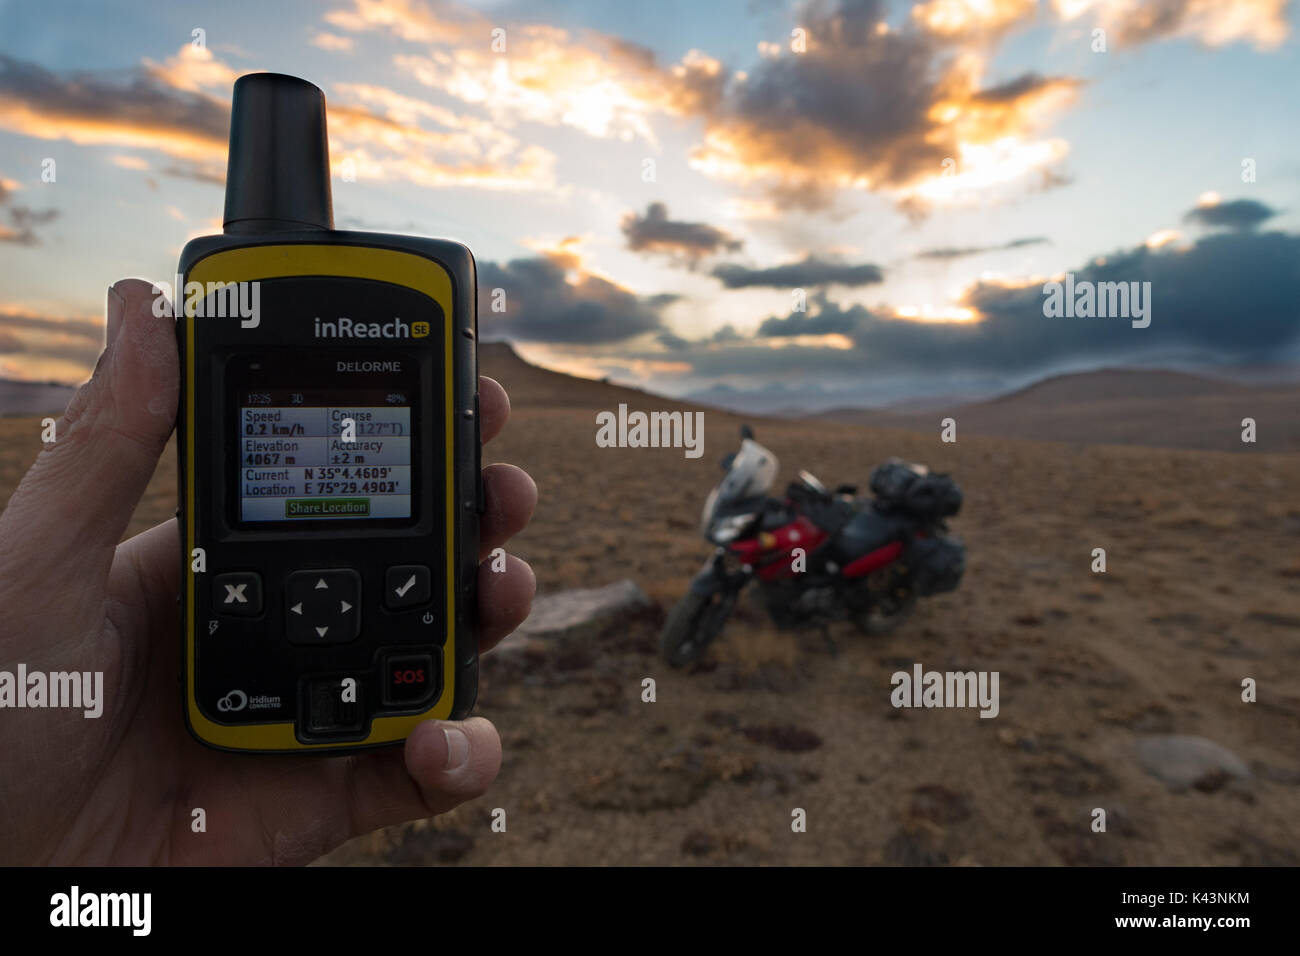 Deosai Stock Photos Deosai Stock Images Alamy - What's the elevation at my location